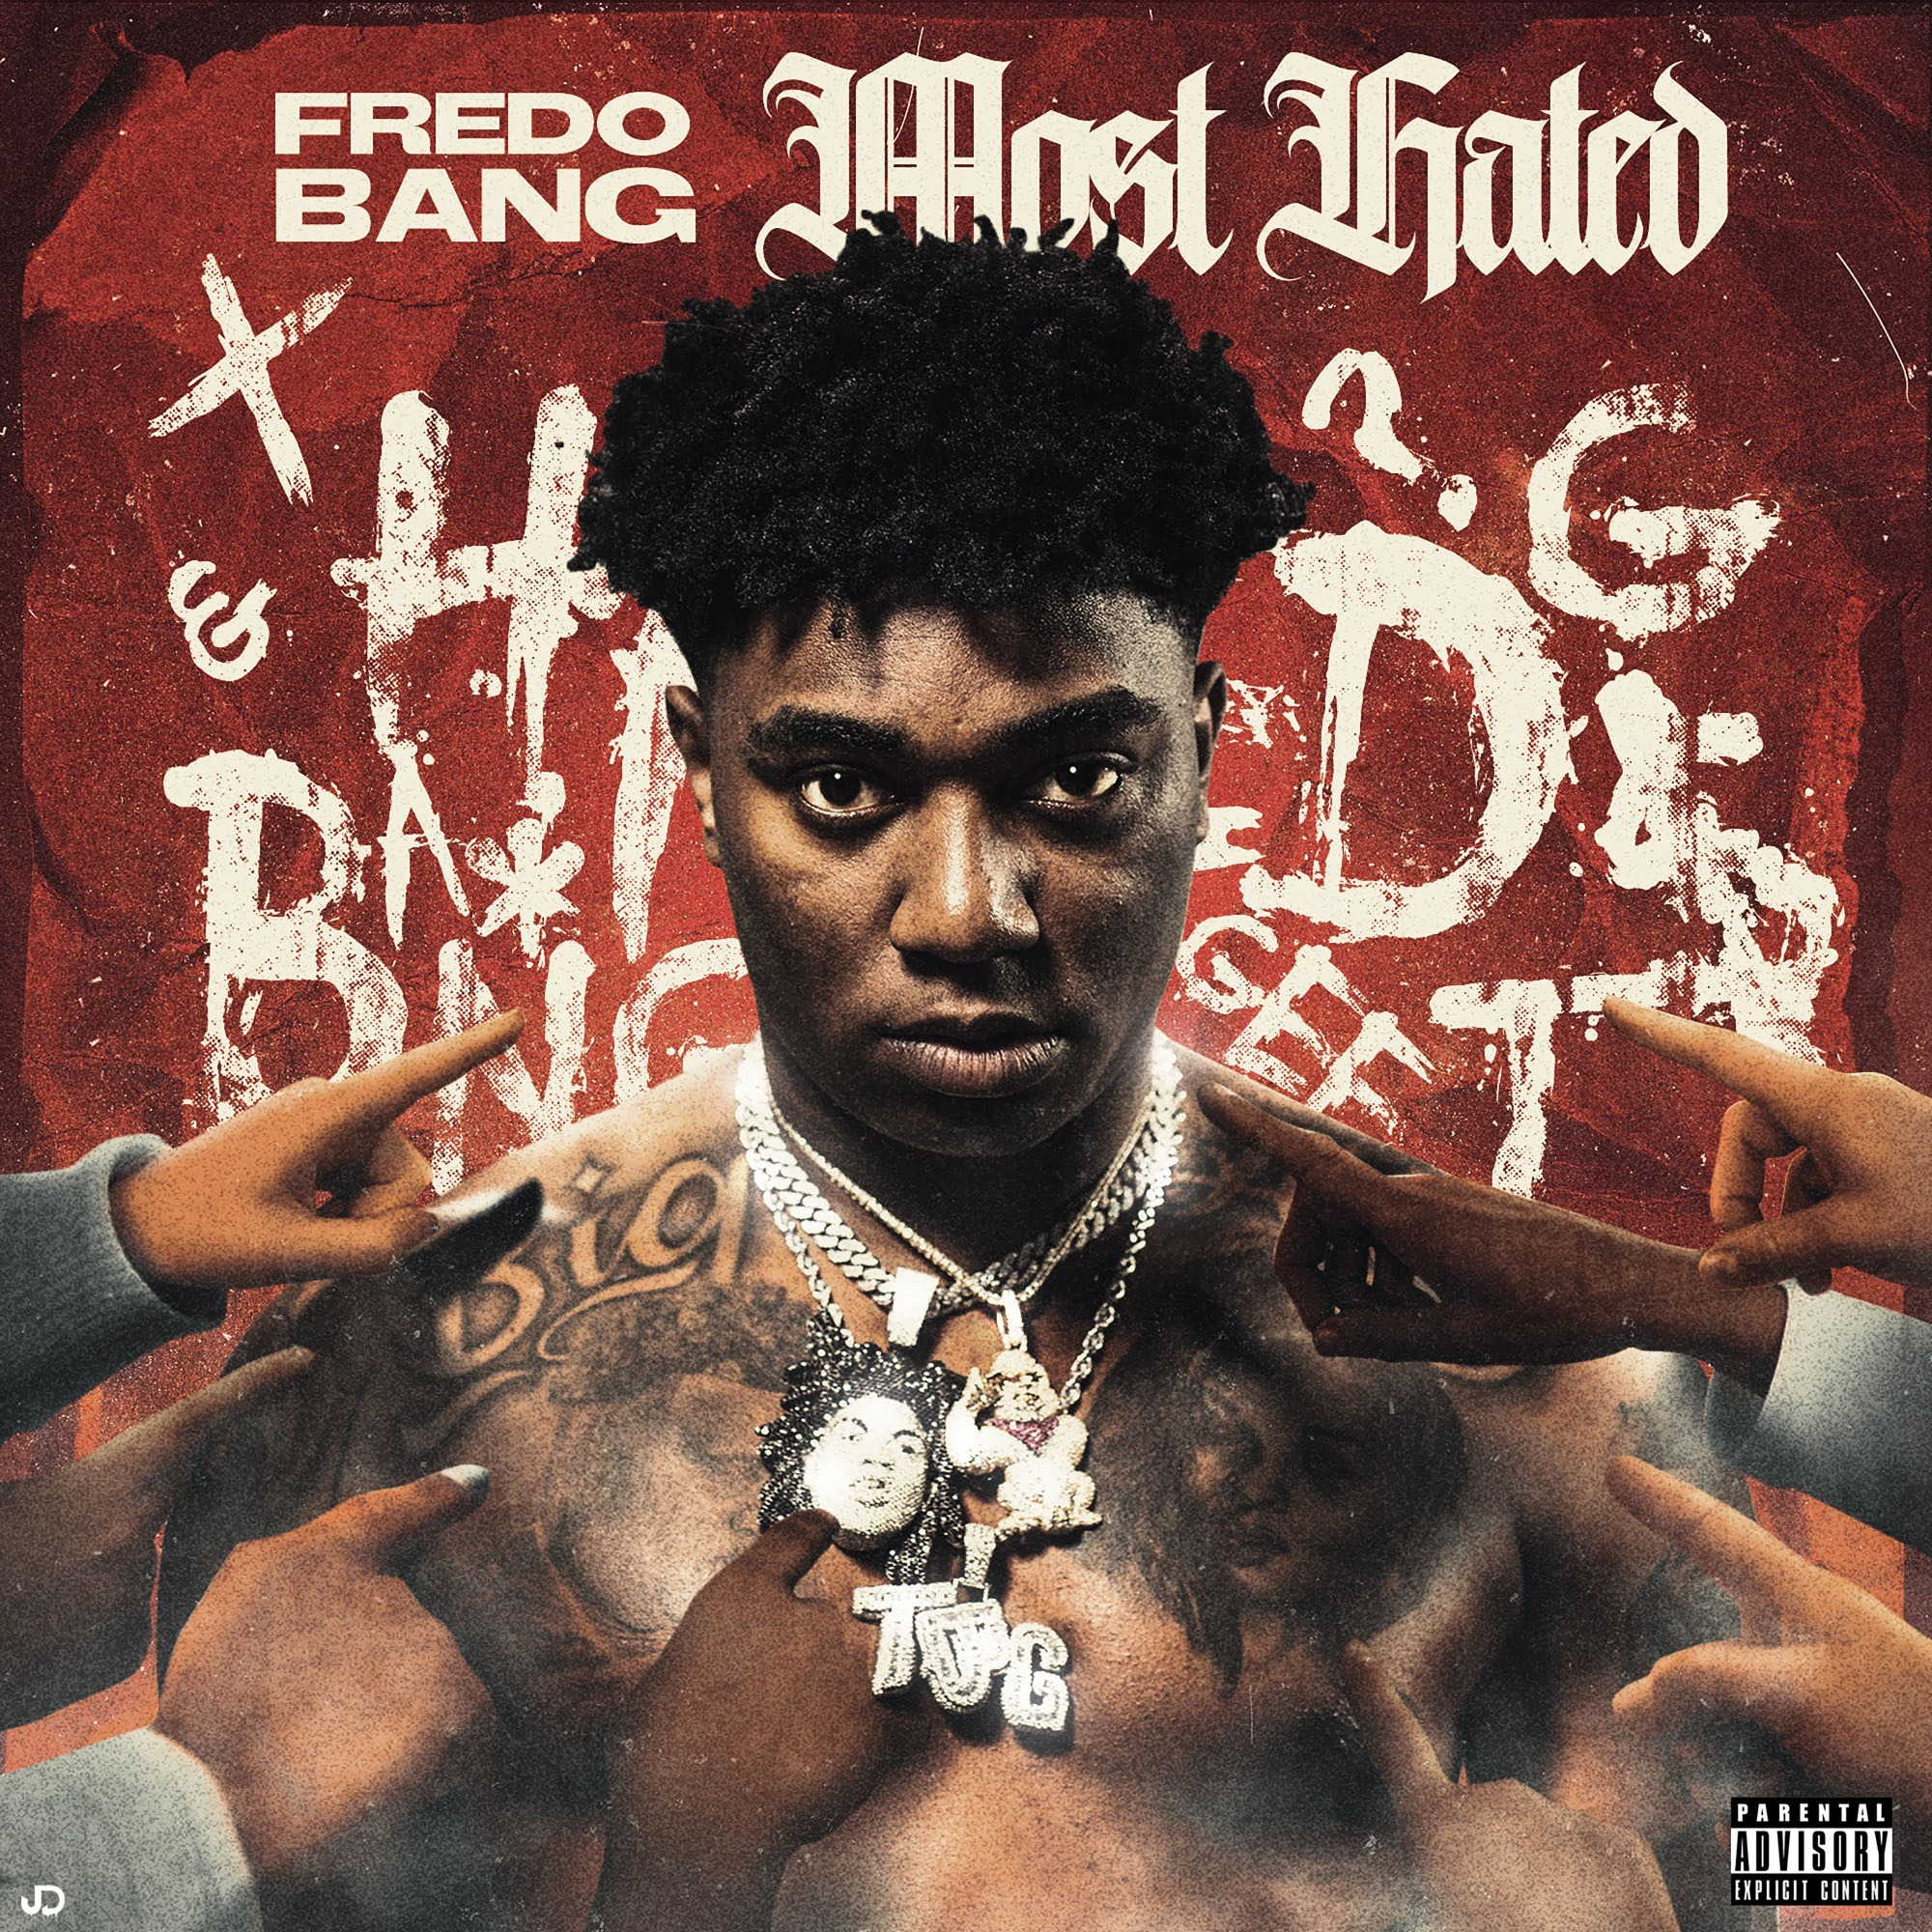 Fredo Bang – Get Even (feat. Lil Baby)